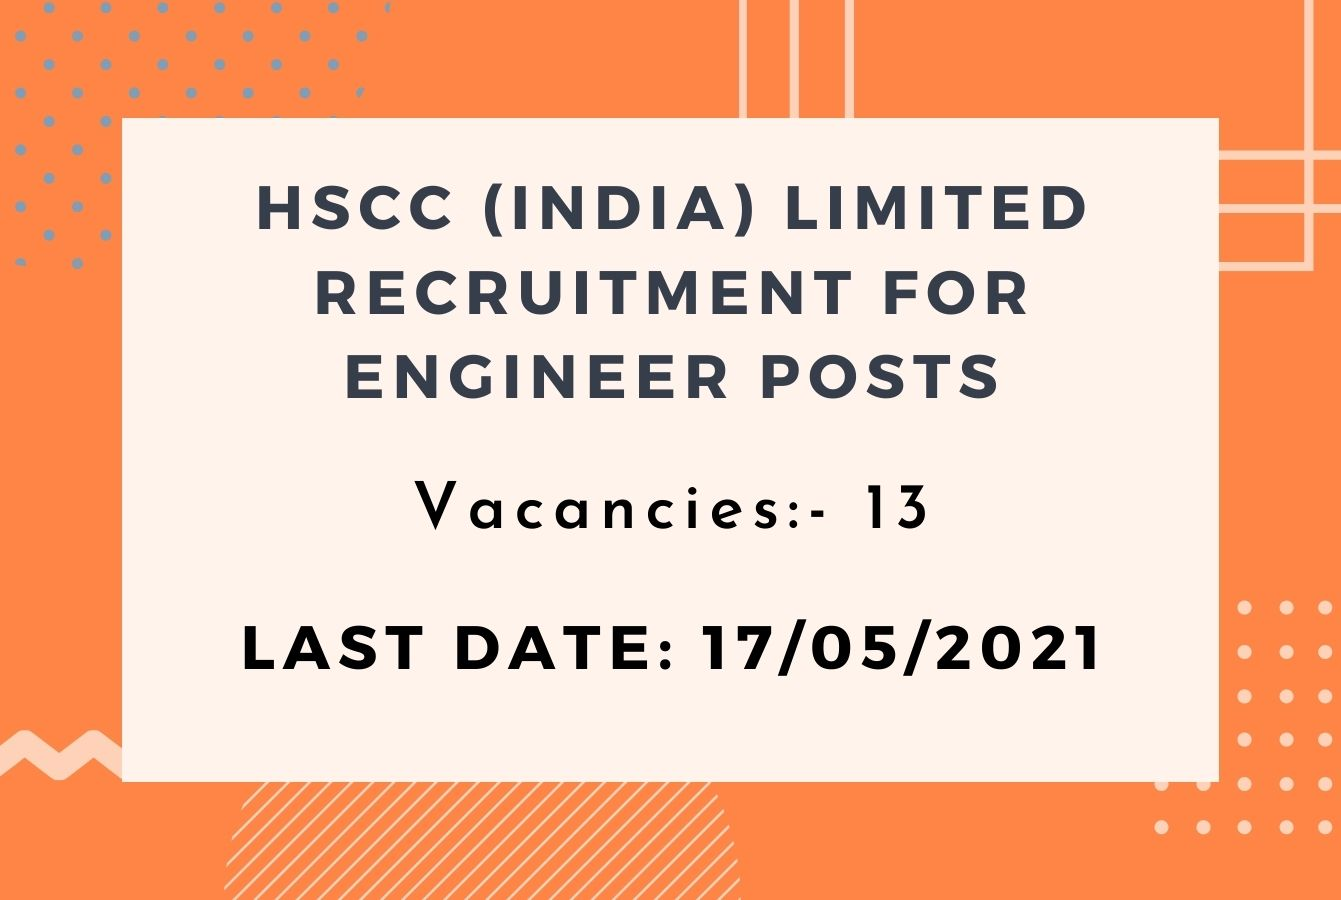 HSCC (India) Limited Recruitment for Engineer posts